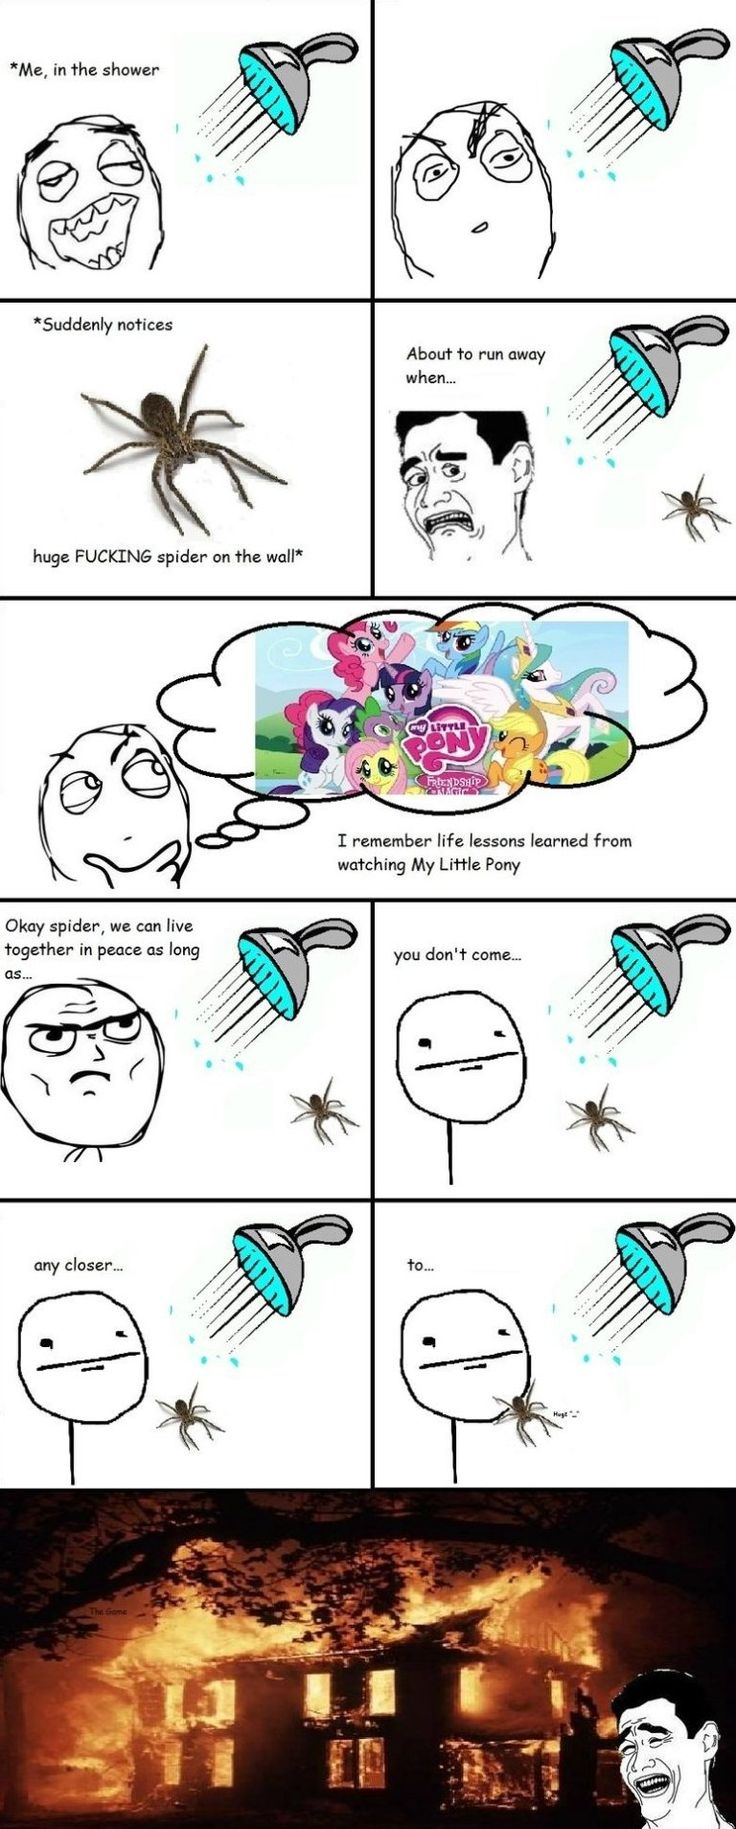 Rage Comics - Spiders - www.meme-lol.com